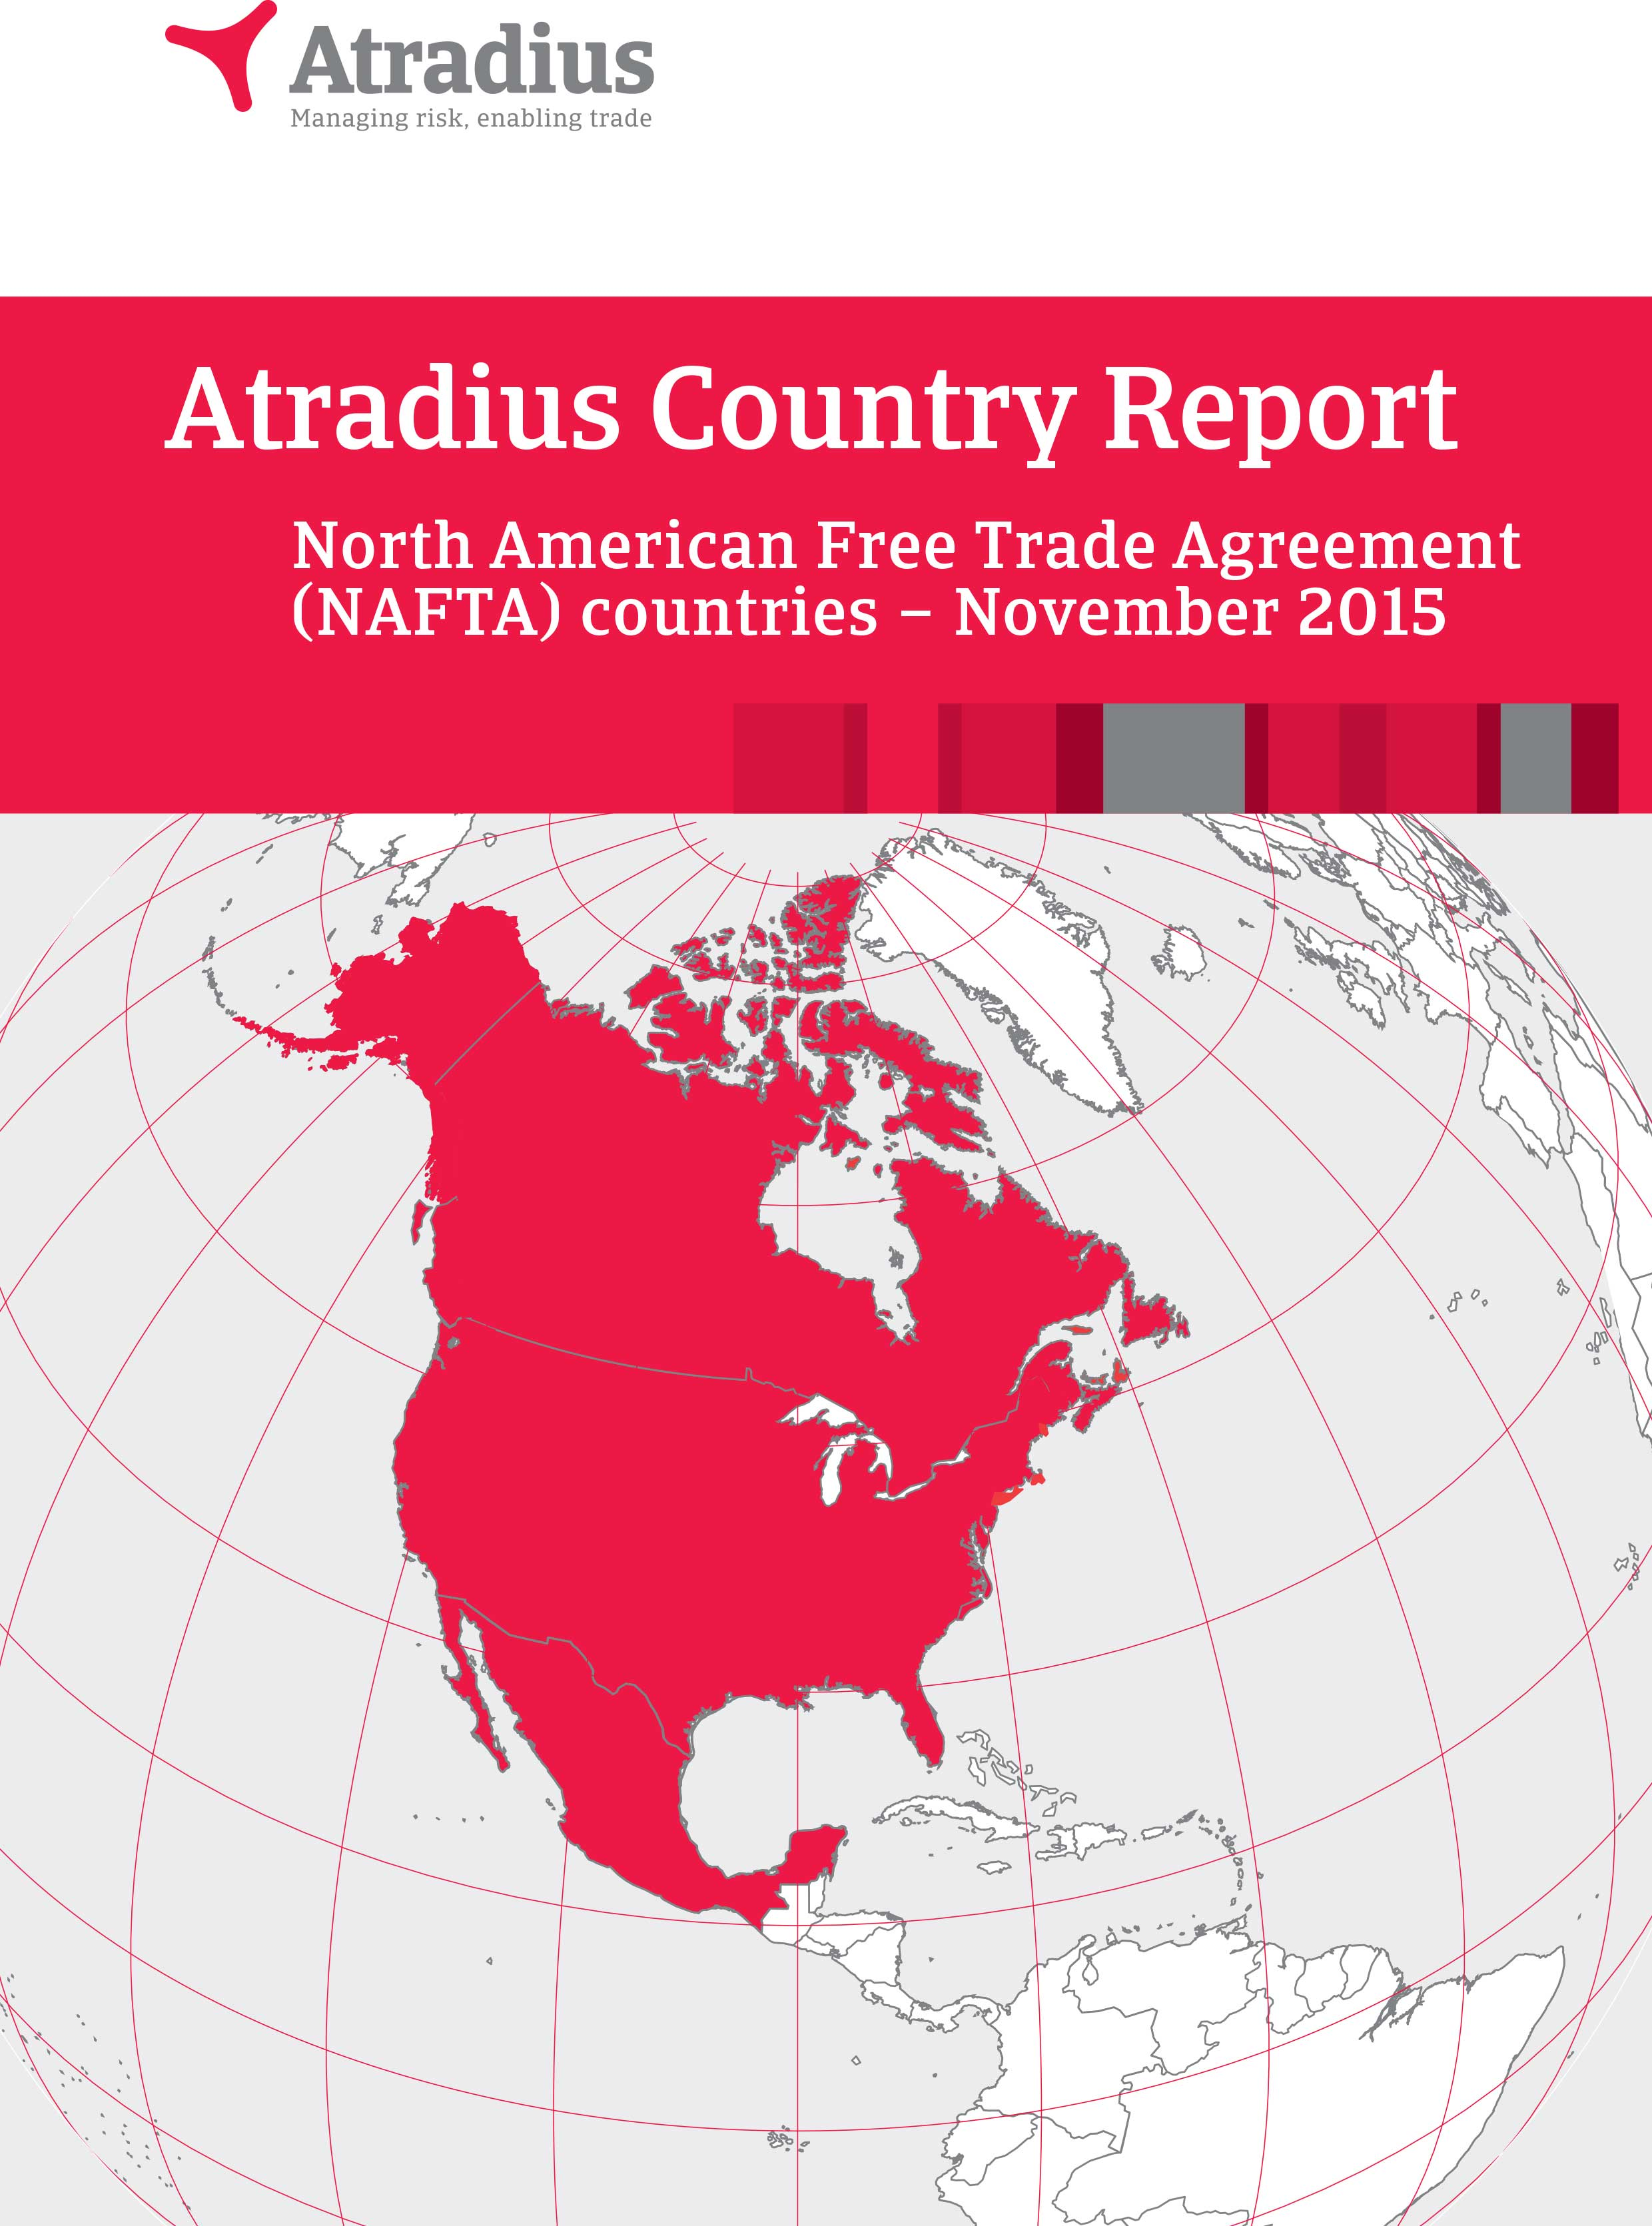 Country_Report_NAFTA_2015_CRNAFTA1501en